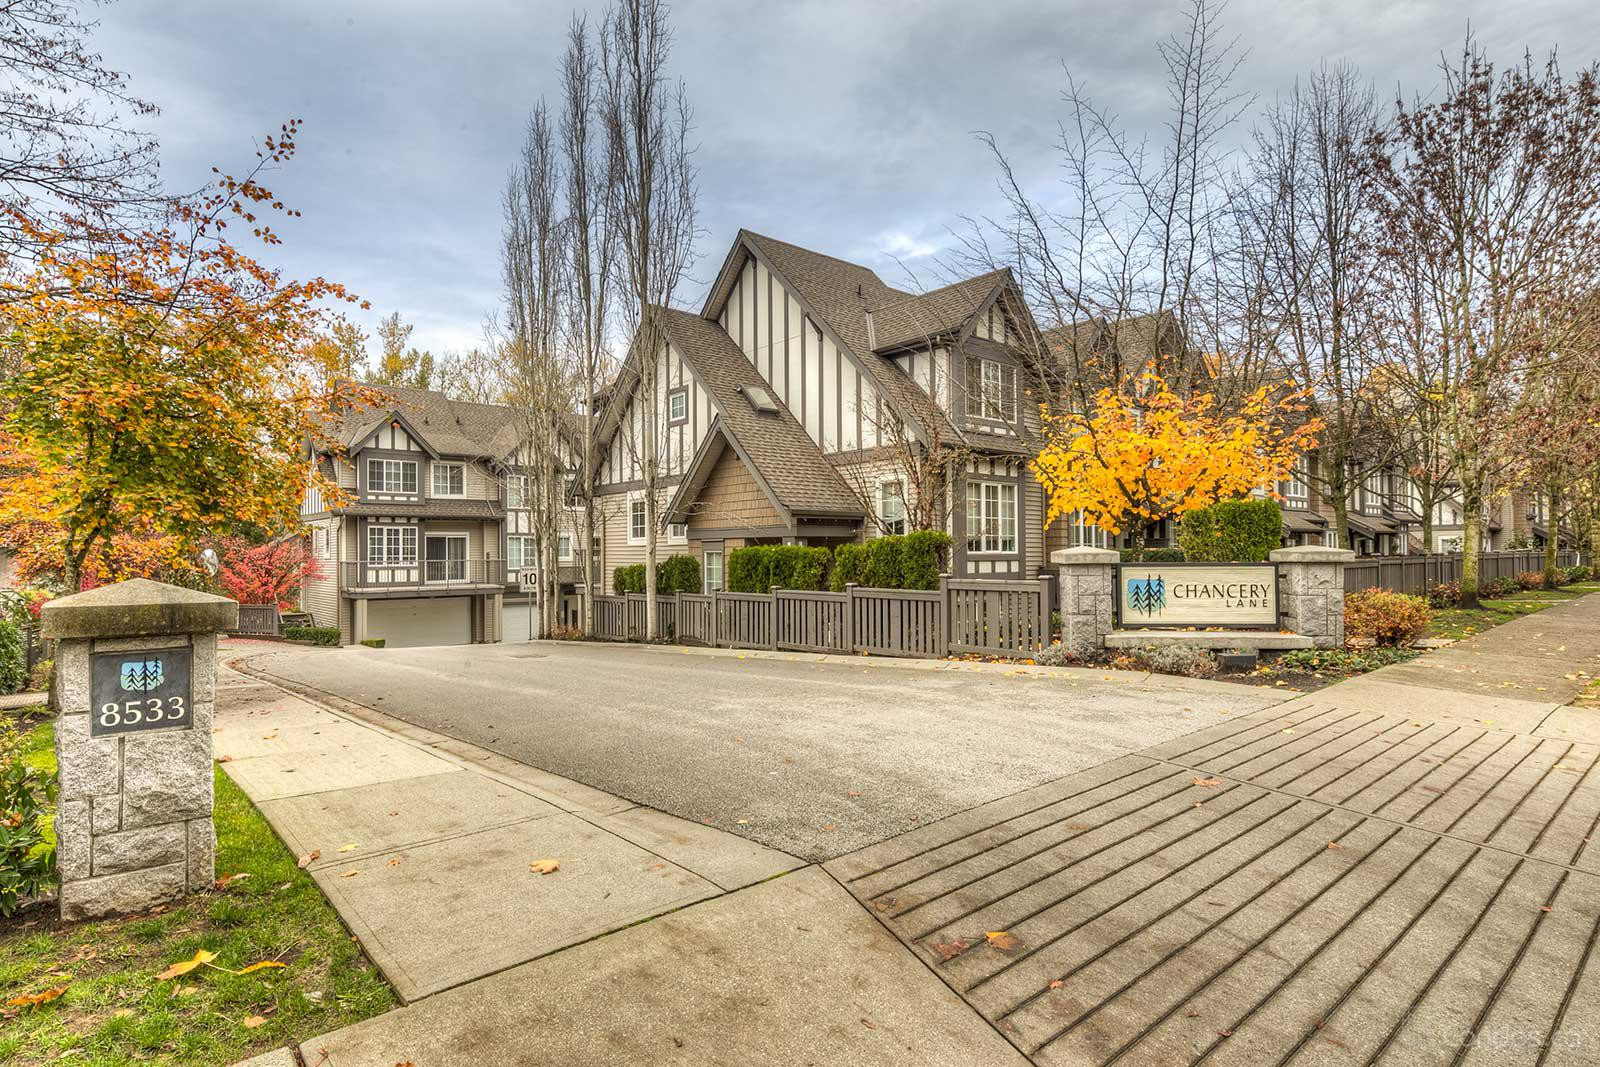 Chancery Lane at 8533 Cumberland Pl, Burnaby 0